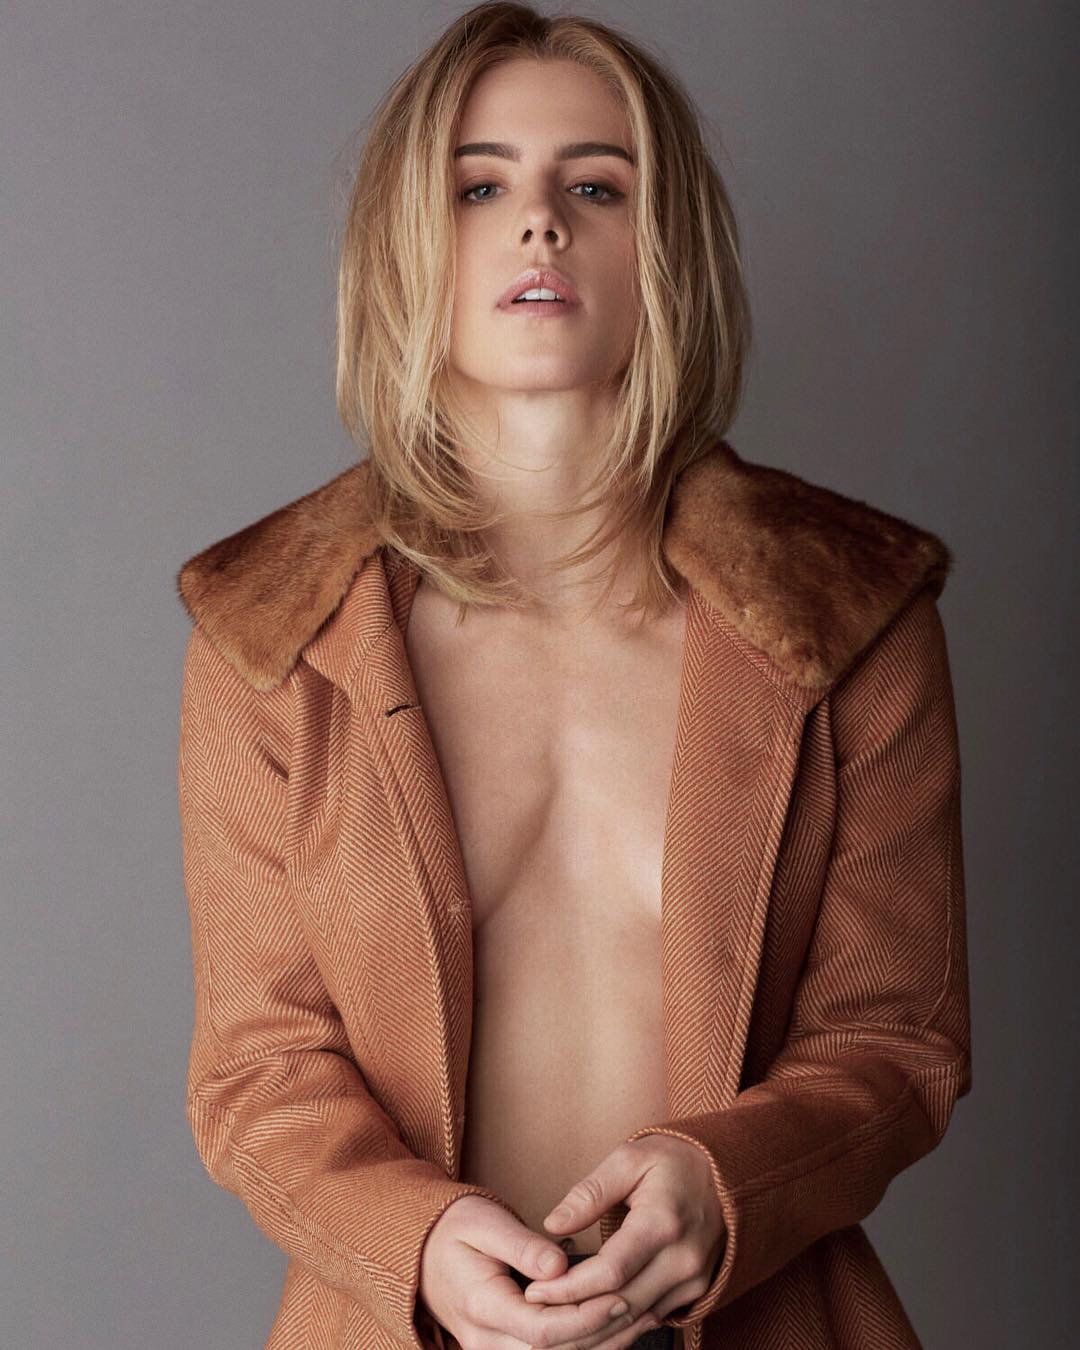 Hot Emily Bett Rickards nudes (59 foto and video), Topless, Paparazzi, Instagram, cameltoe 2015